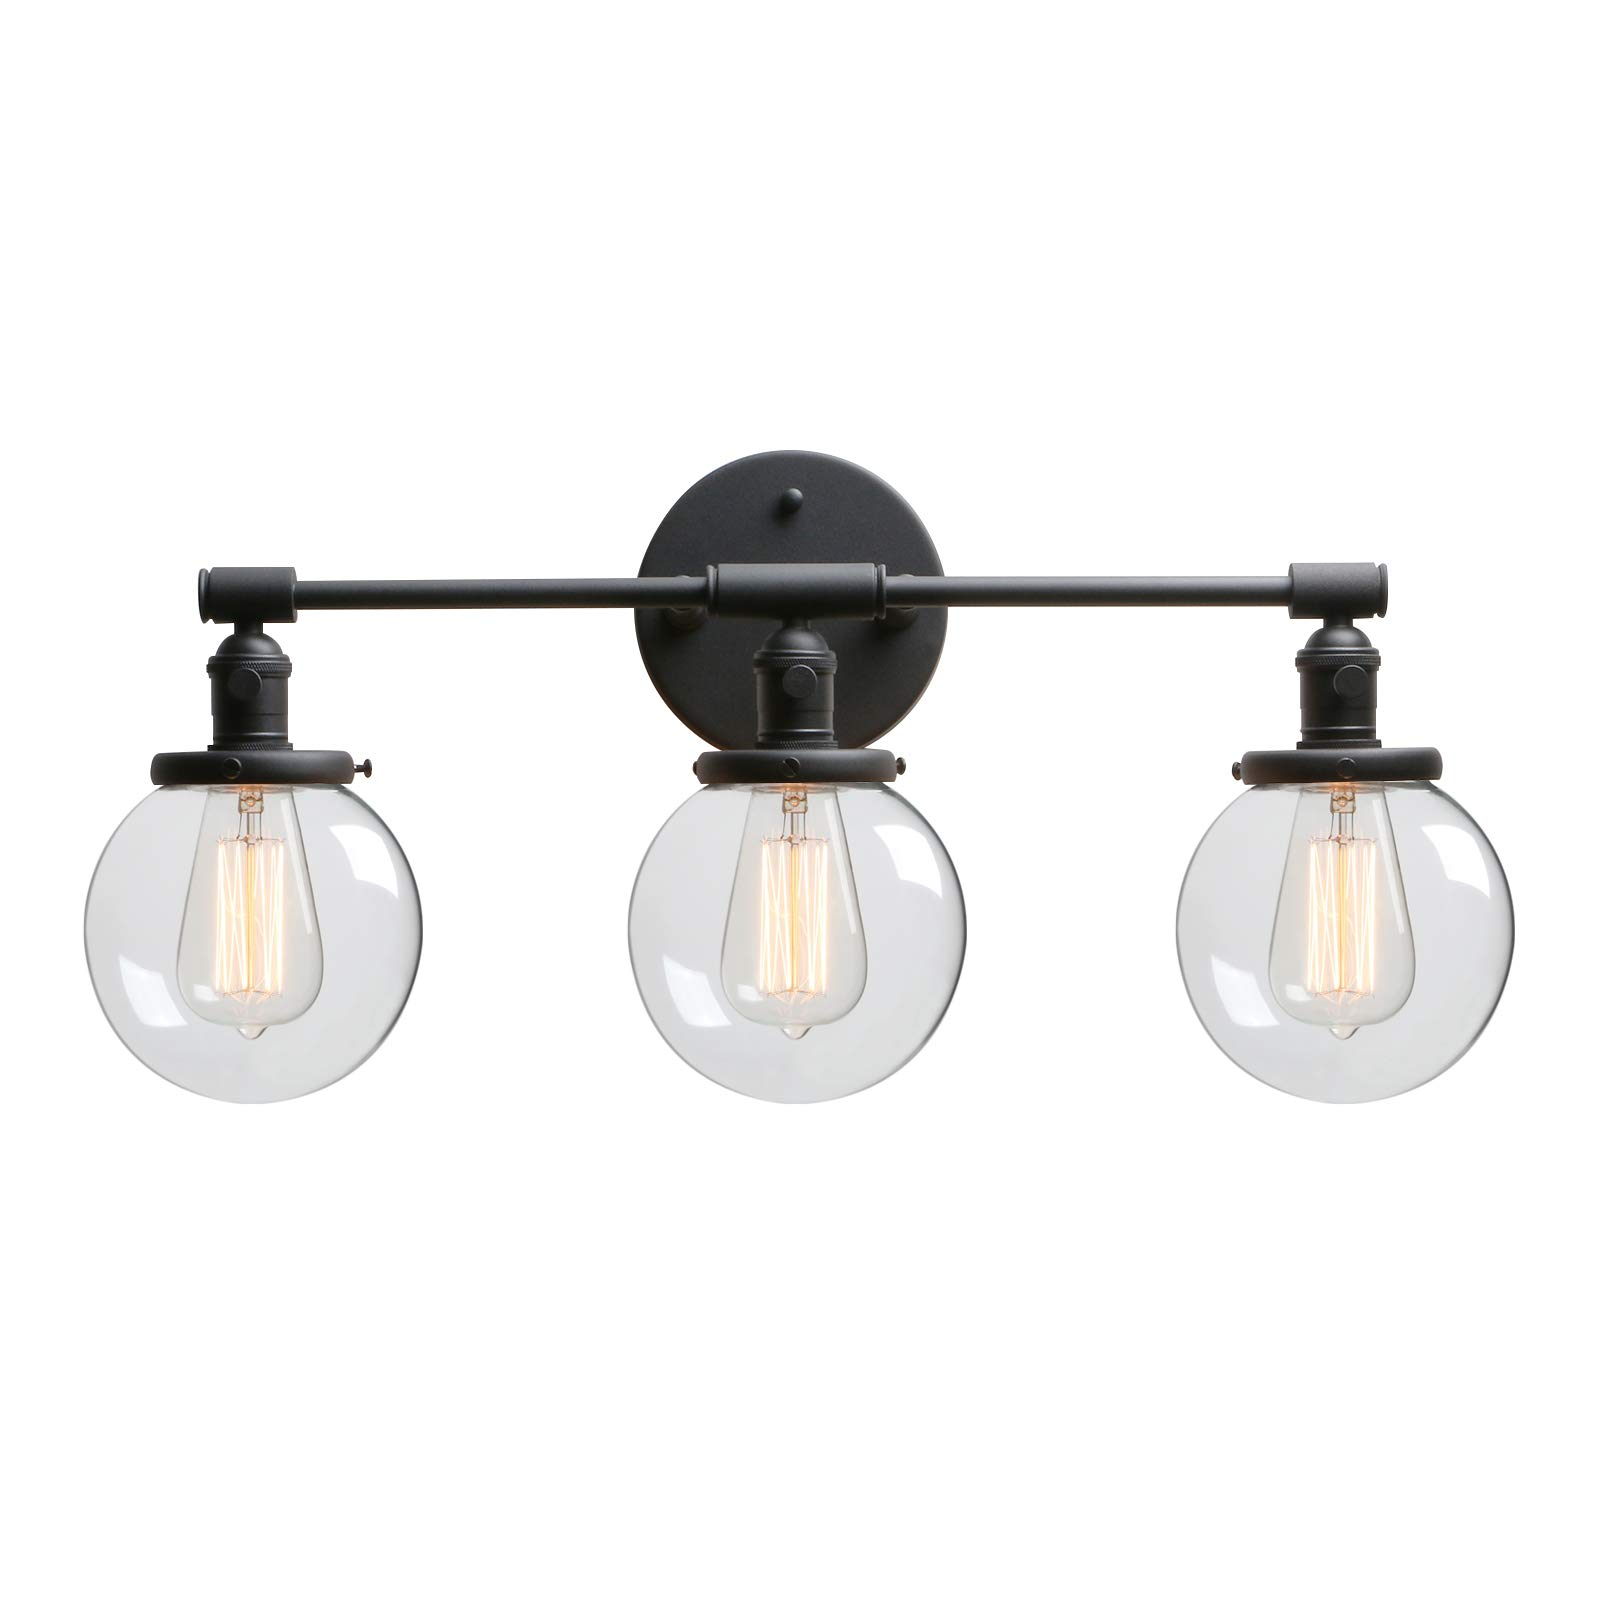 """Phansthy 3 Light Wall Sconce Bathroom Vanity Lamp Black Sconce Light Fixture with 5.6"""" Round Glass Canopy, Black"""